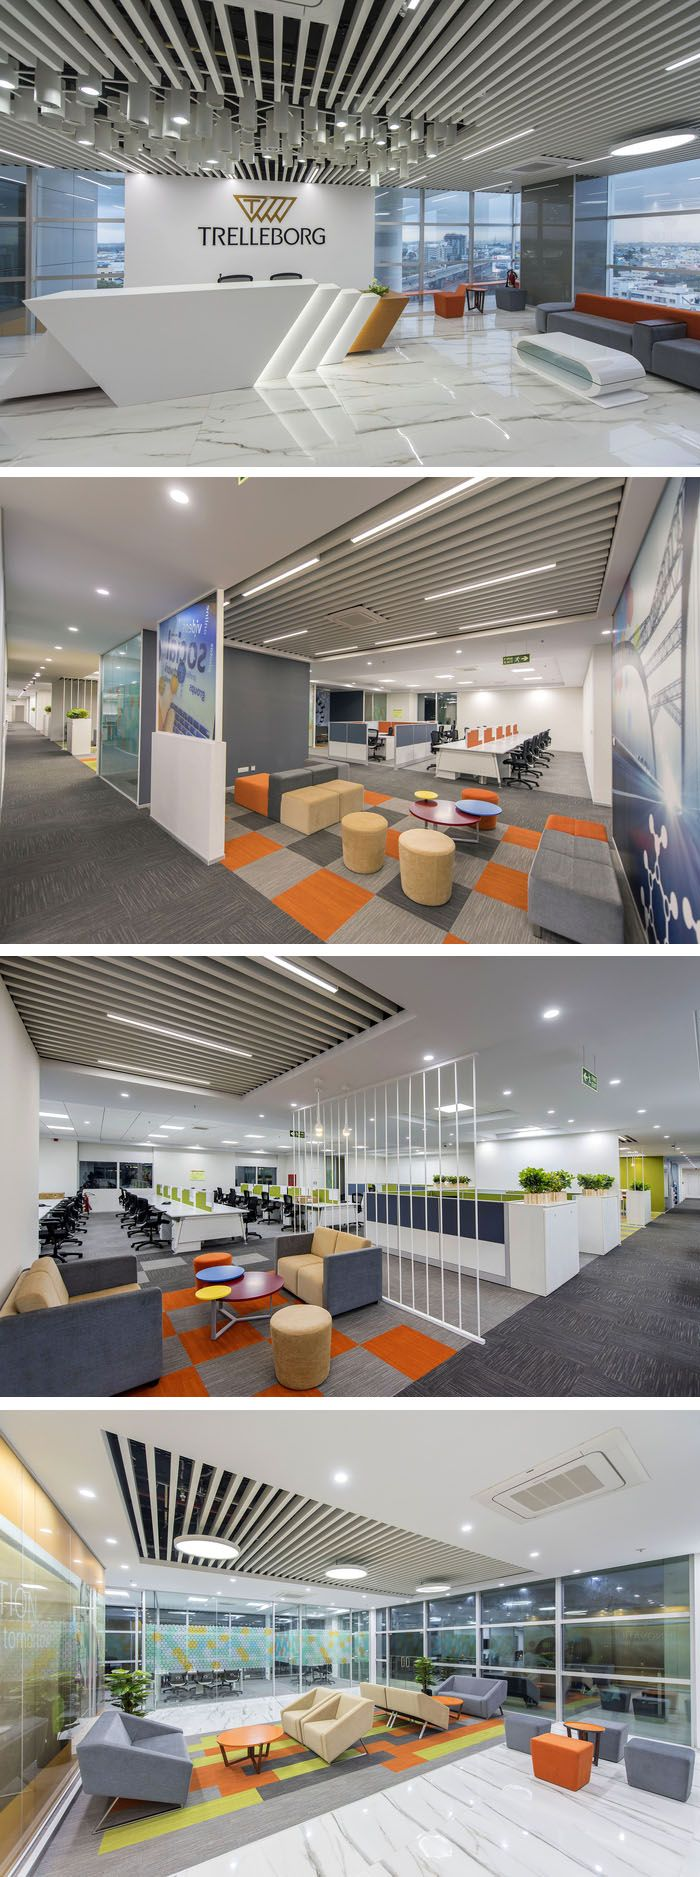 Office Interior Space Design-Trelleborg Office Layout